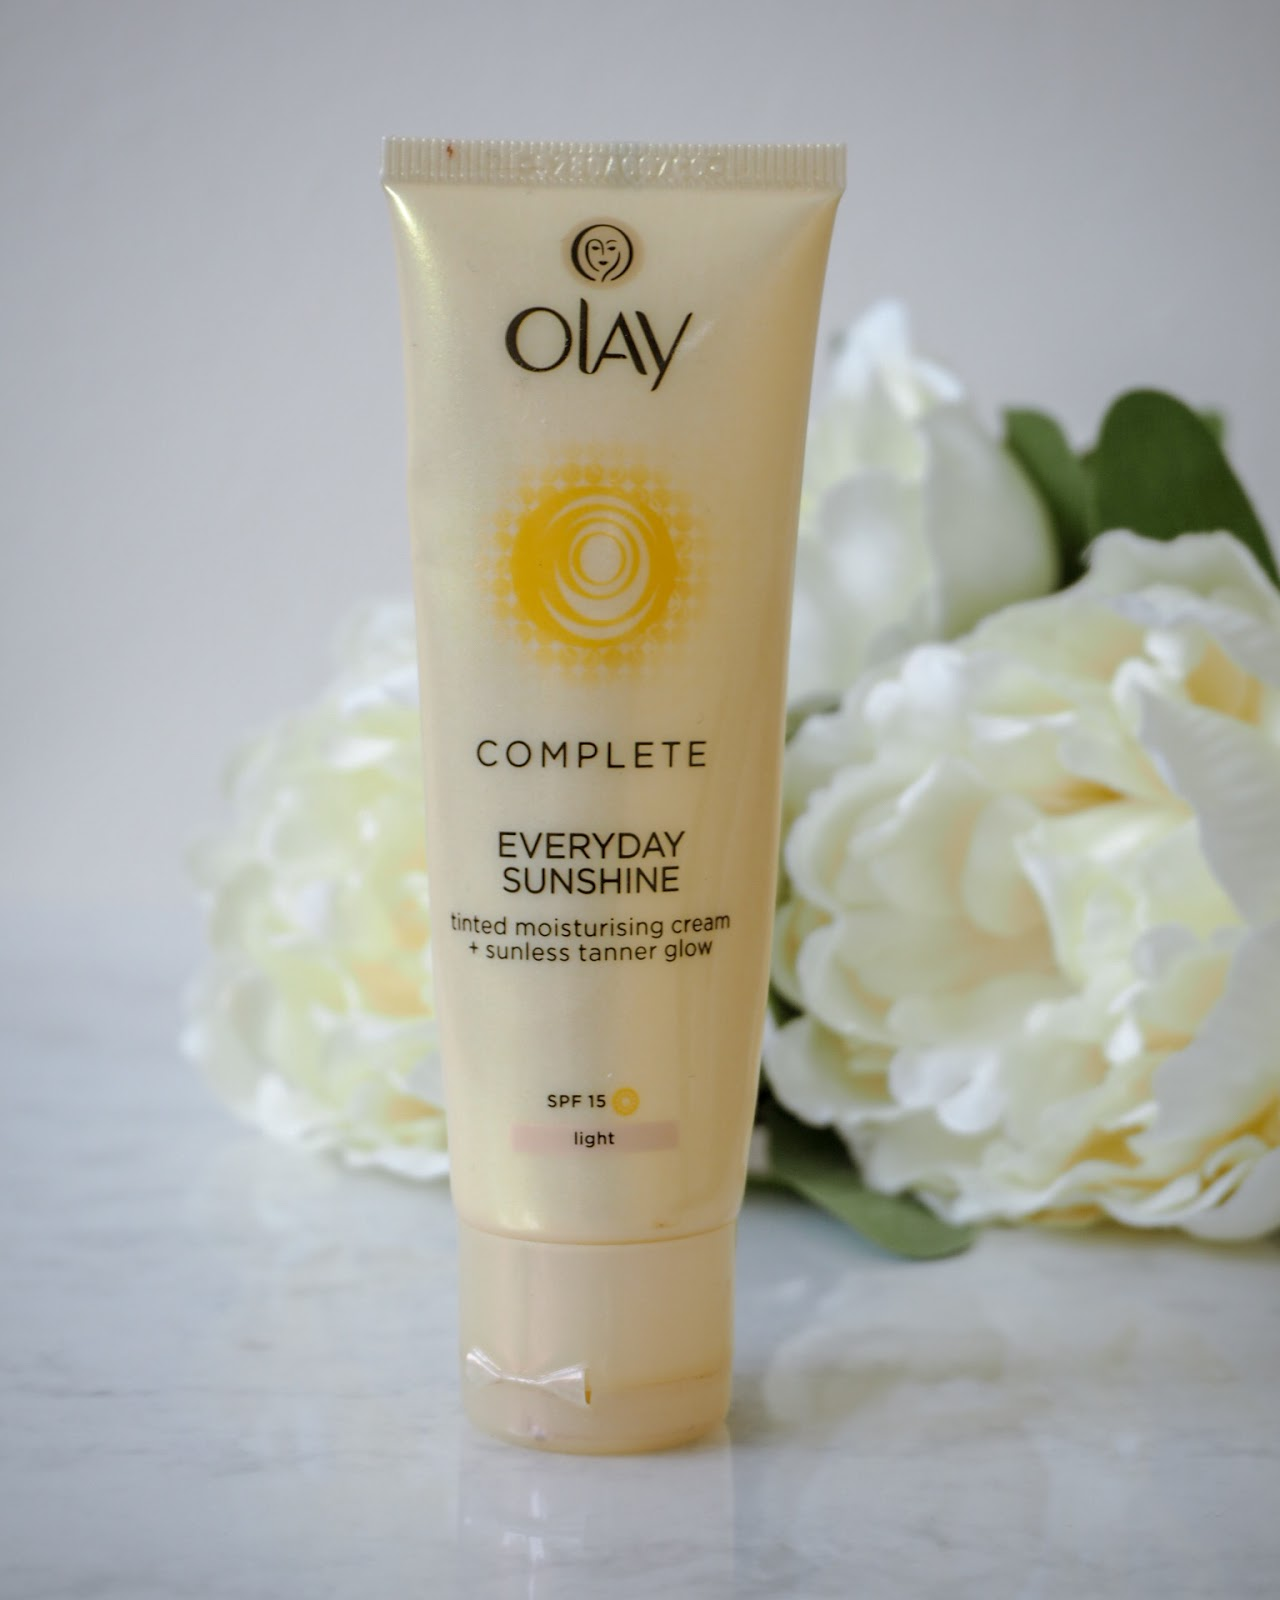 Olay Complete Everyday Sunshine